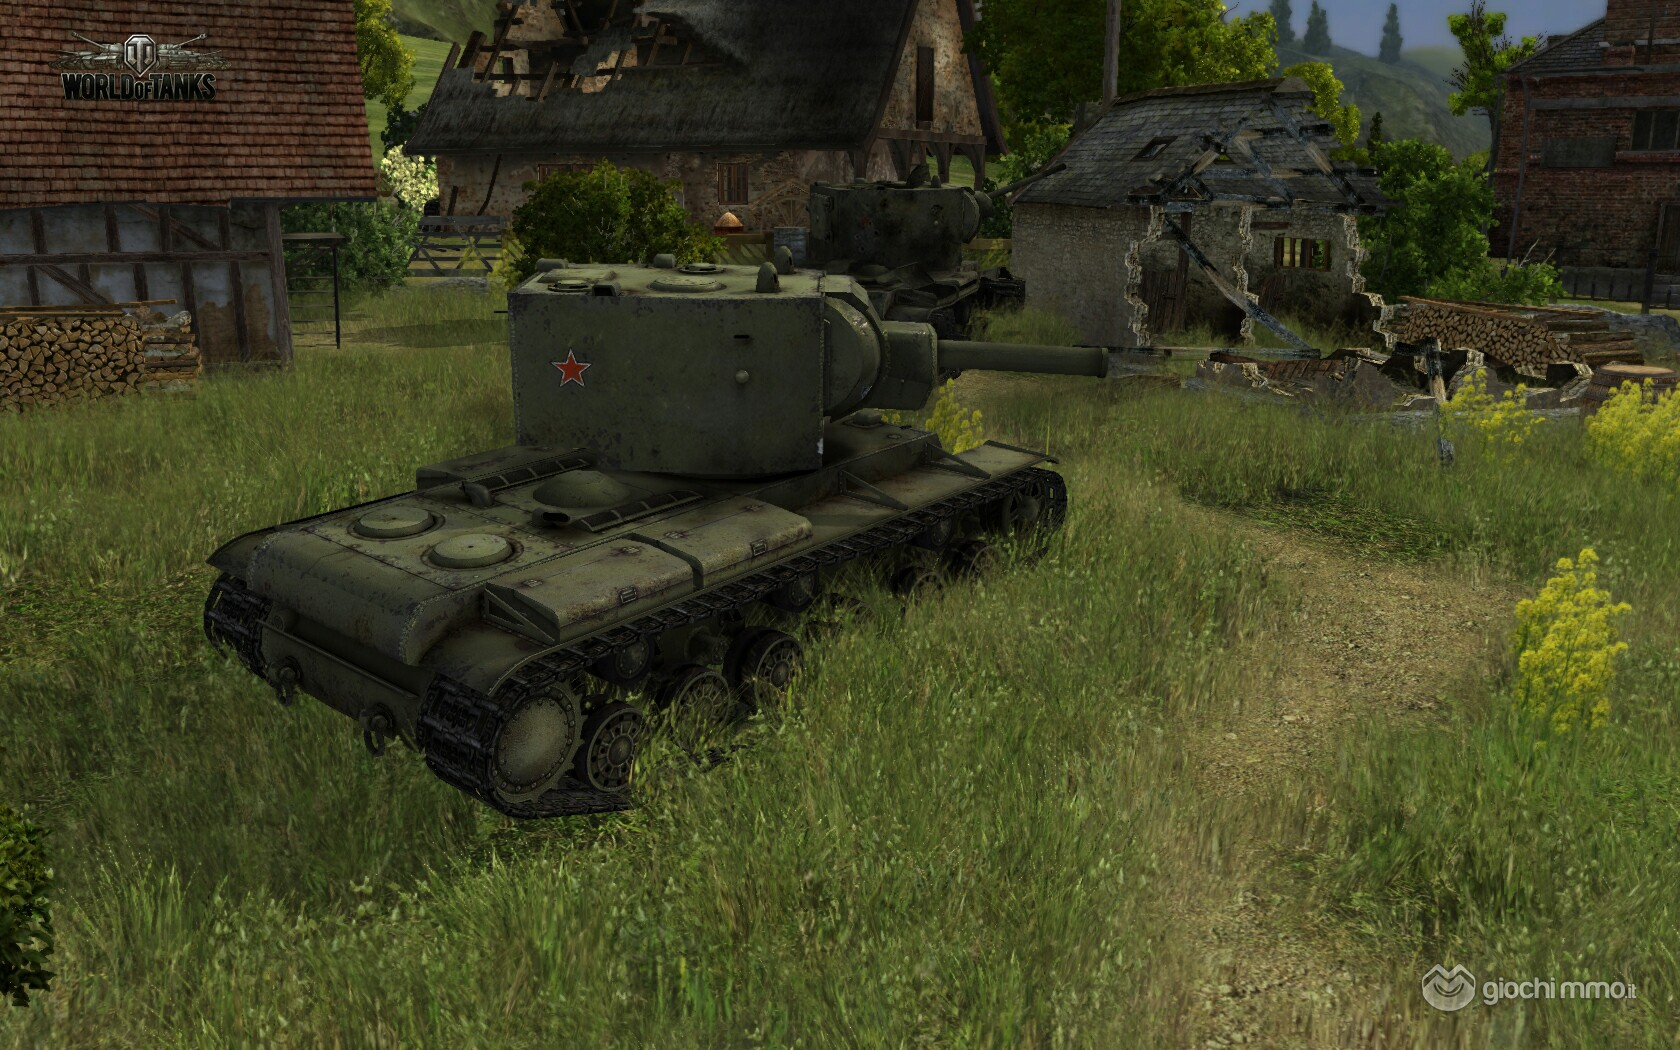 Clicca sull'immagine per ingrandirlaNome:   World of Tanks screen4.jpgVisite: 91Dimensione:   526.7 KBID: 8204